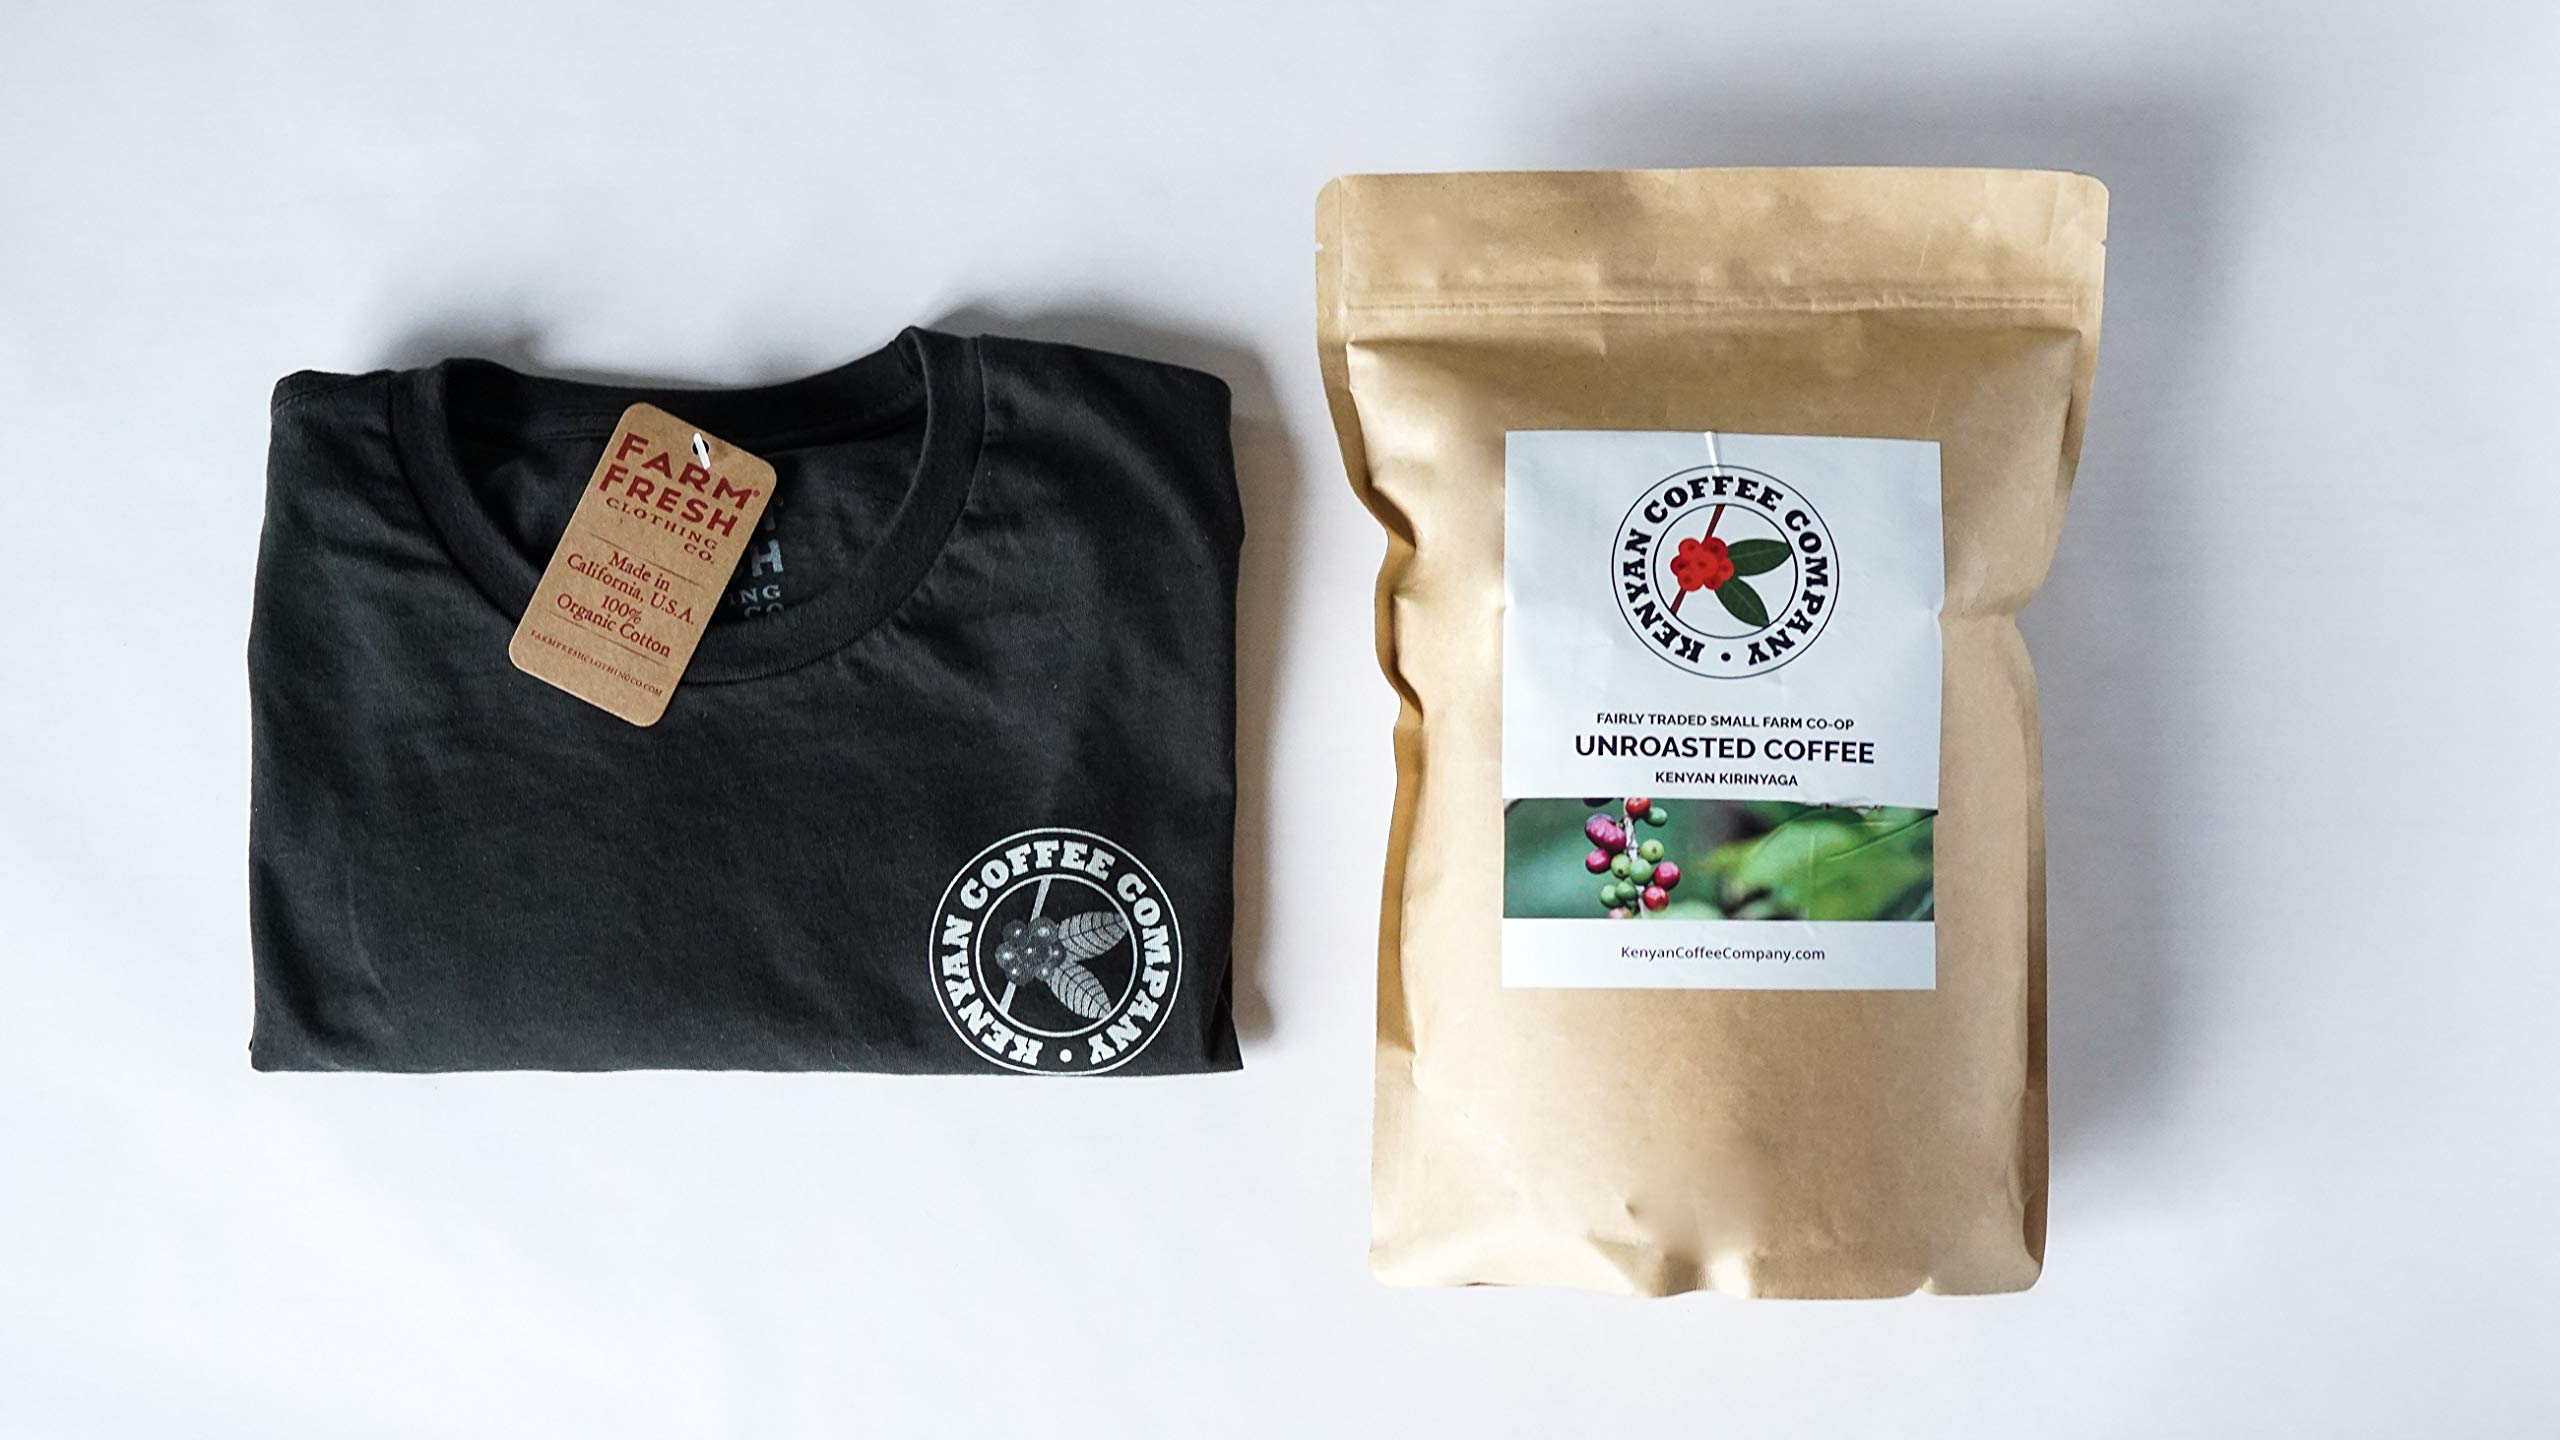 Single Origin Unroasted Green Coffee Beans, AA Grade From Small Regional Kenyan Coffee Farmer Co-Op. Direct Trade (5 Pounds & Free T-Shirt) by KENYAN COFFEE COMPANY